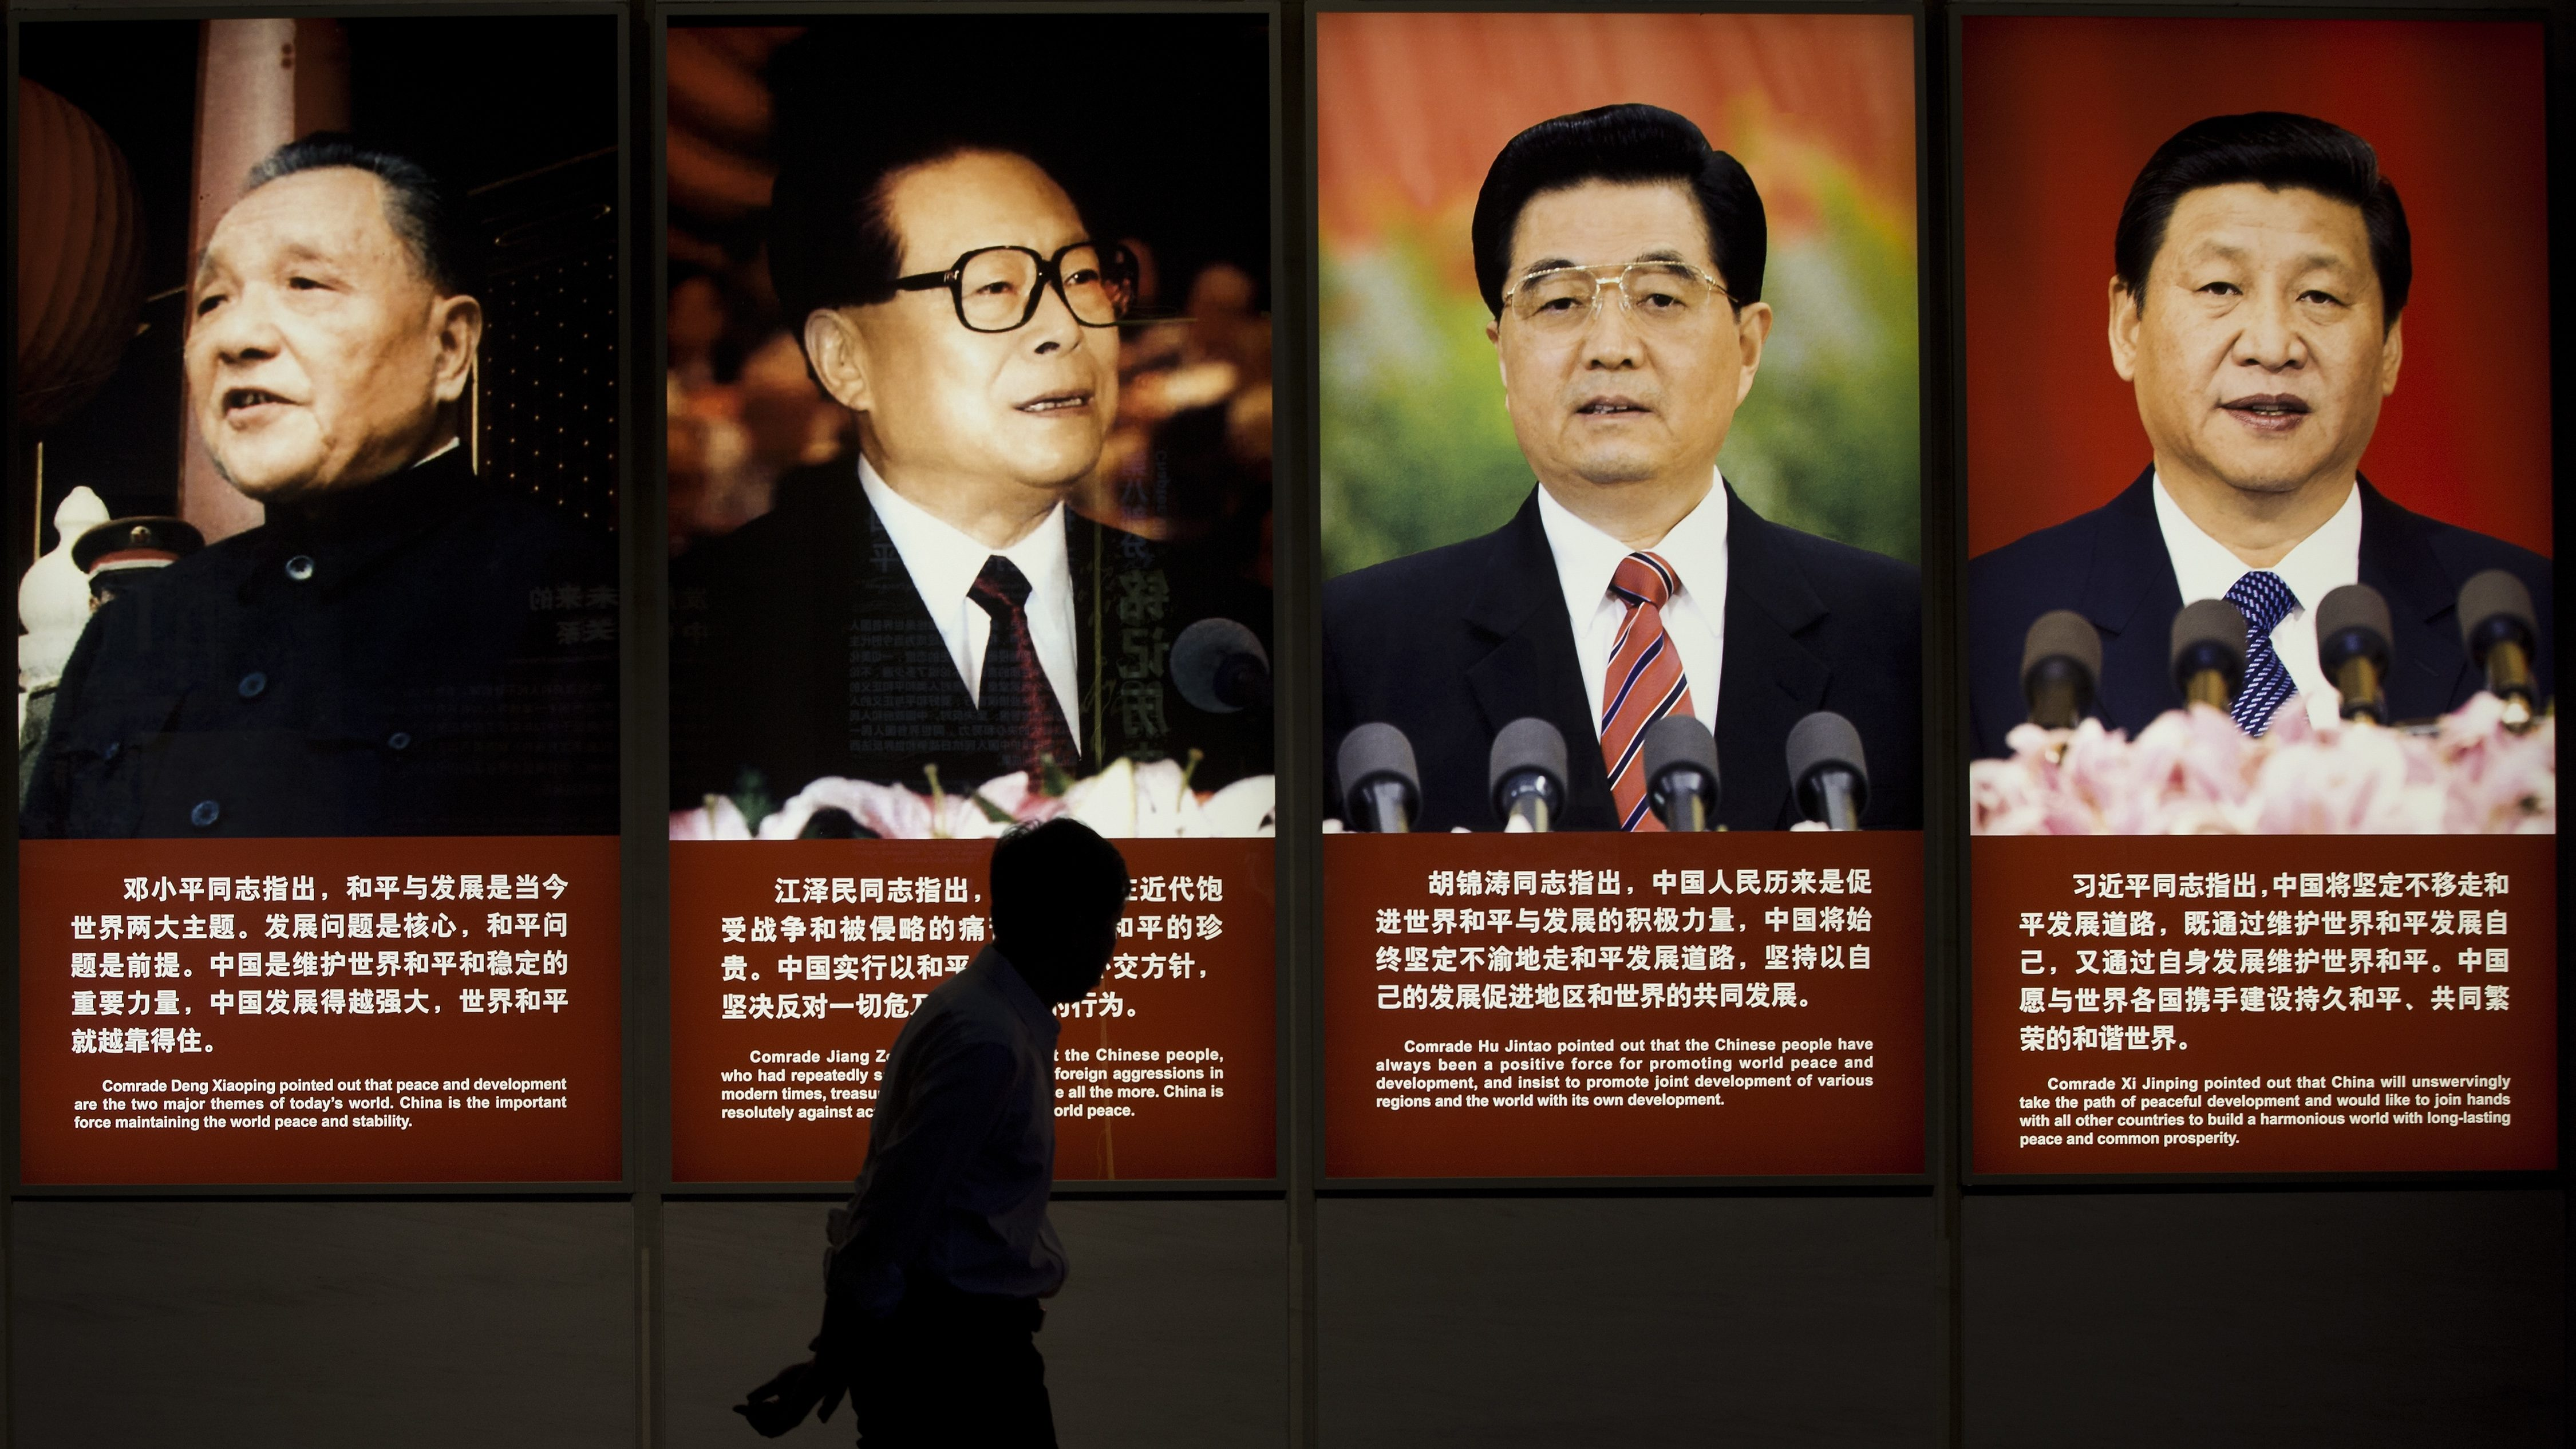 xi jinping could now rule china for life just what deng xiaoping